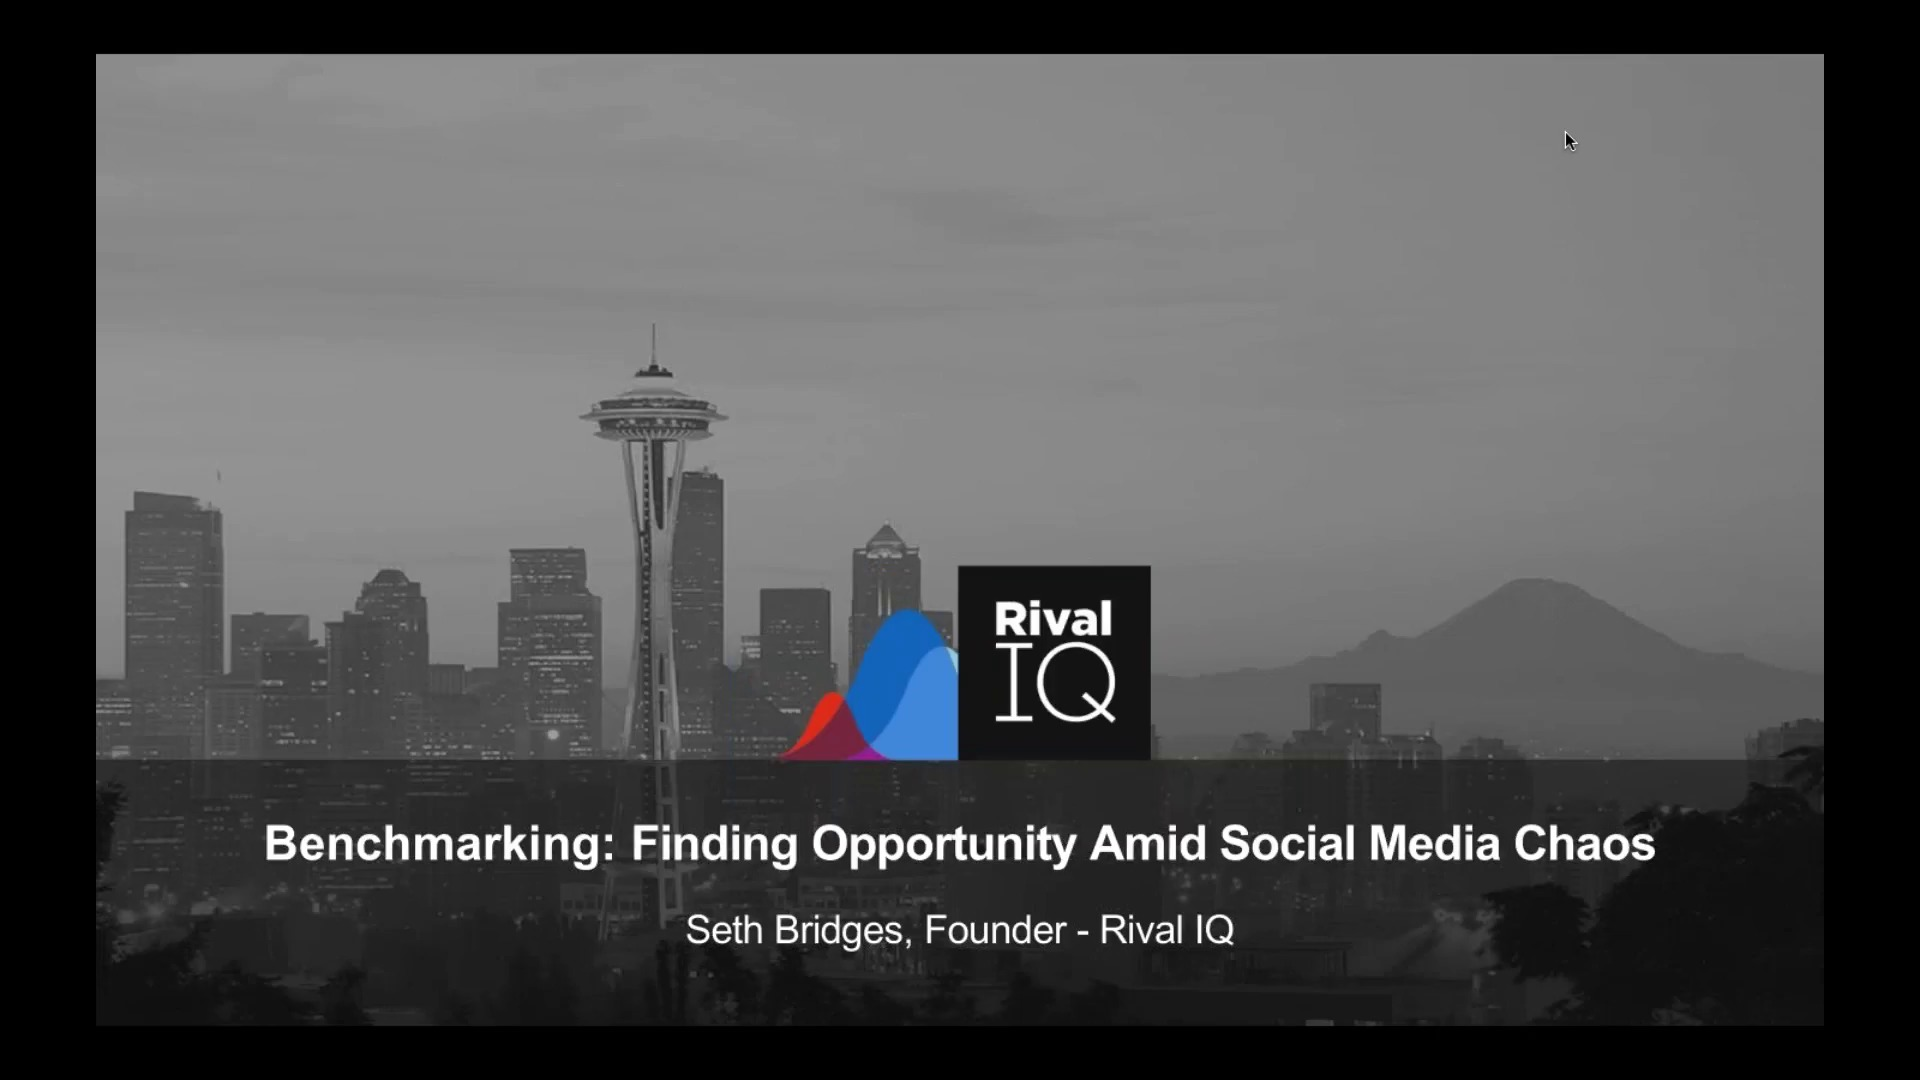 Benchmarking: Finding Opportunity Amid Social Media Chaos